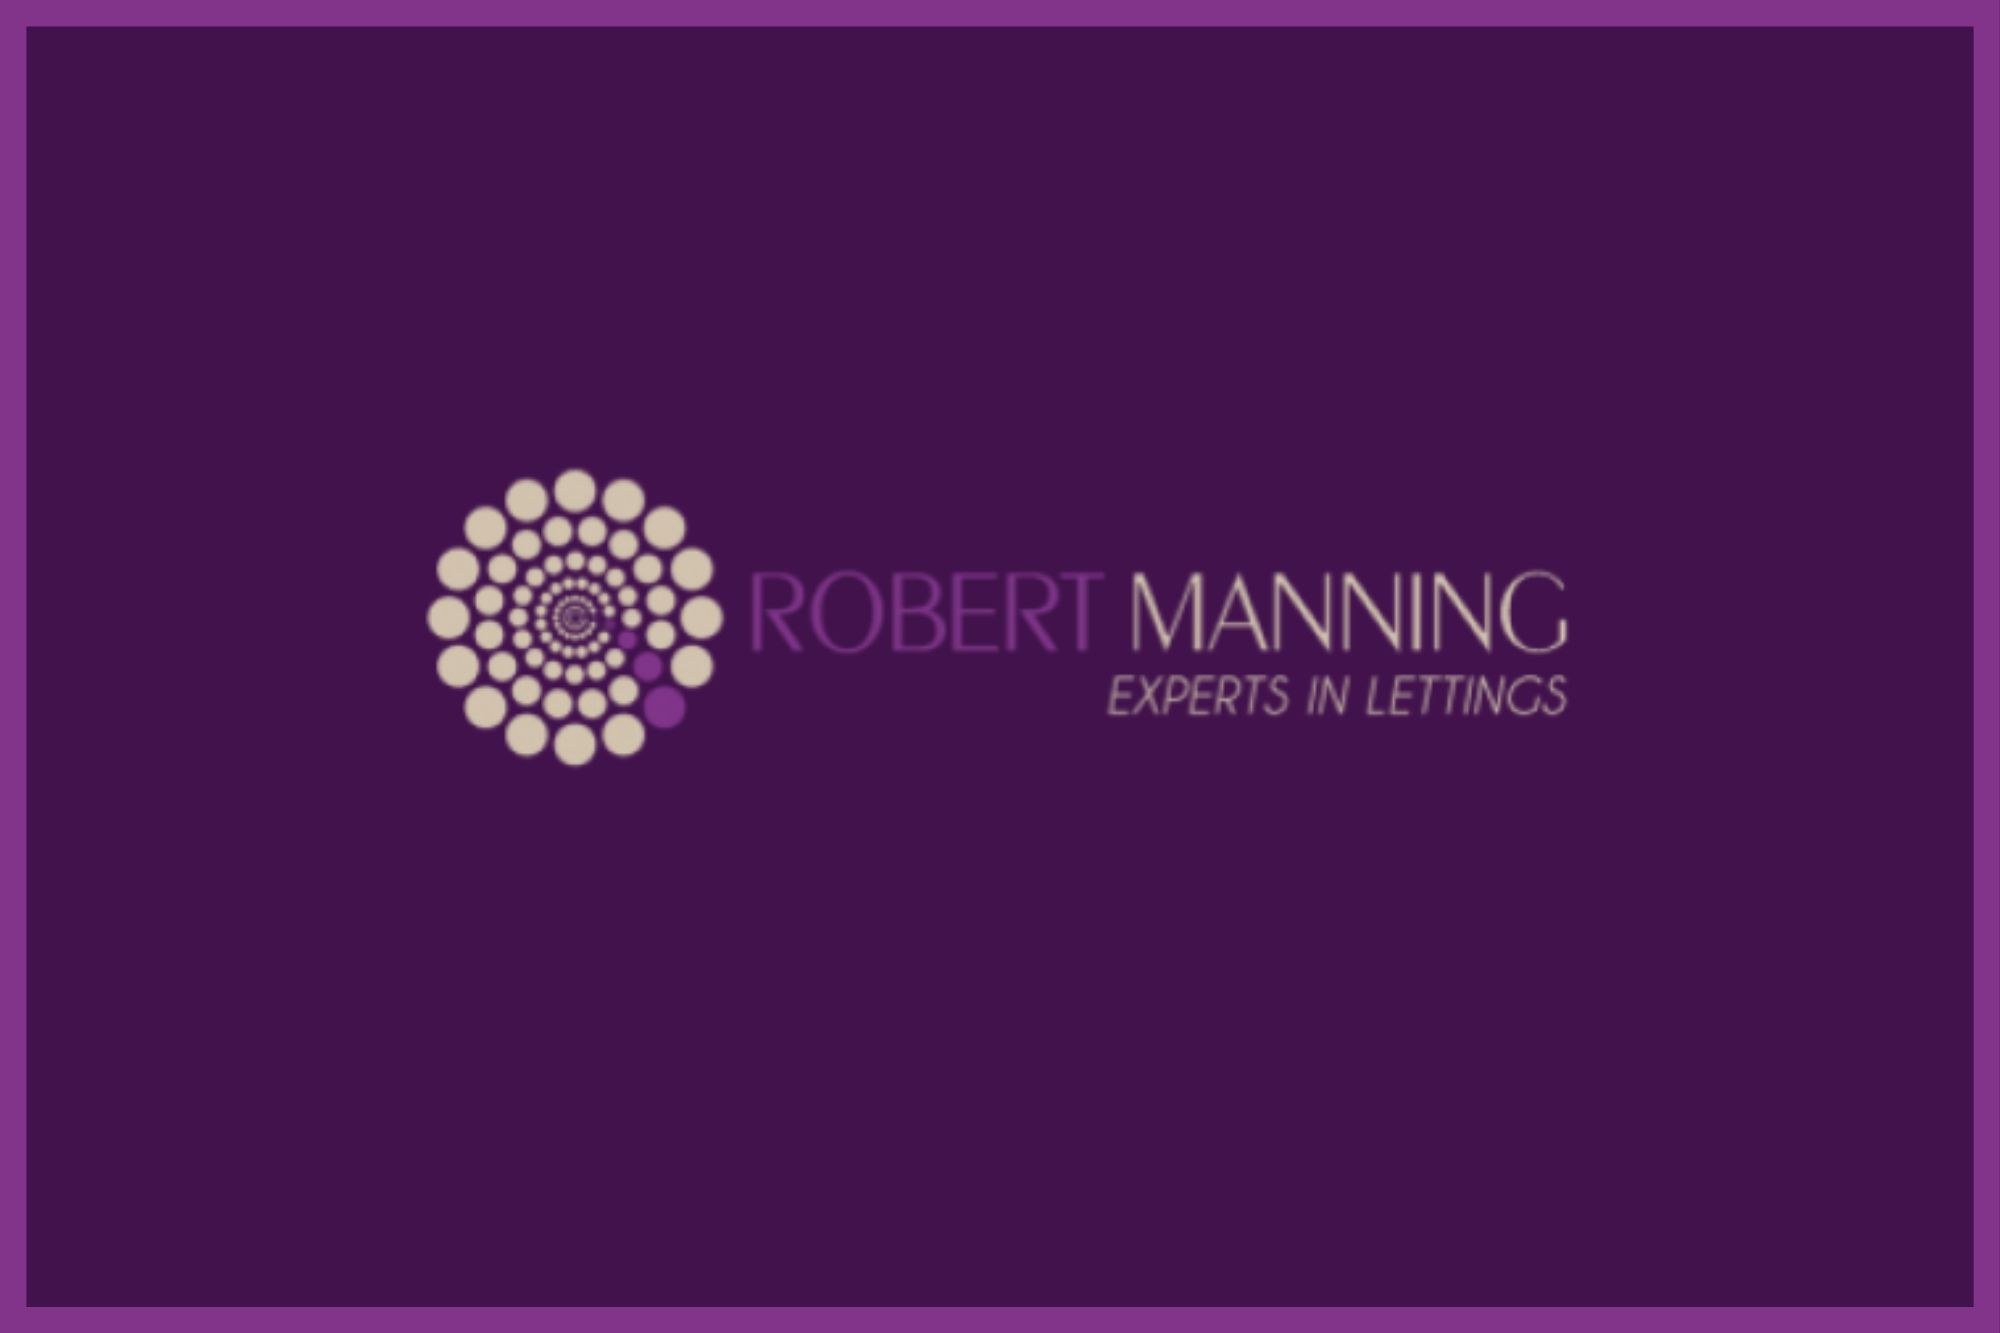 Robert Manning Experts in Lettings.